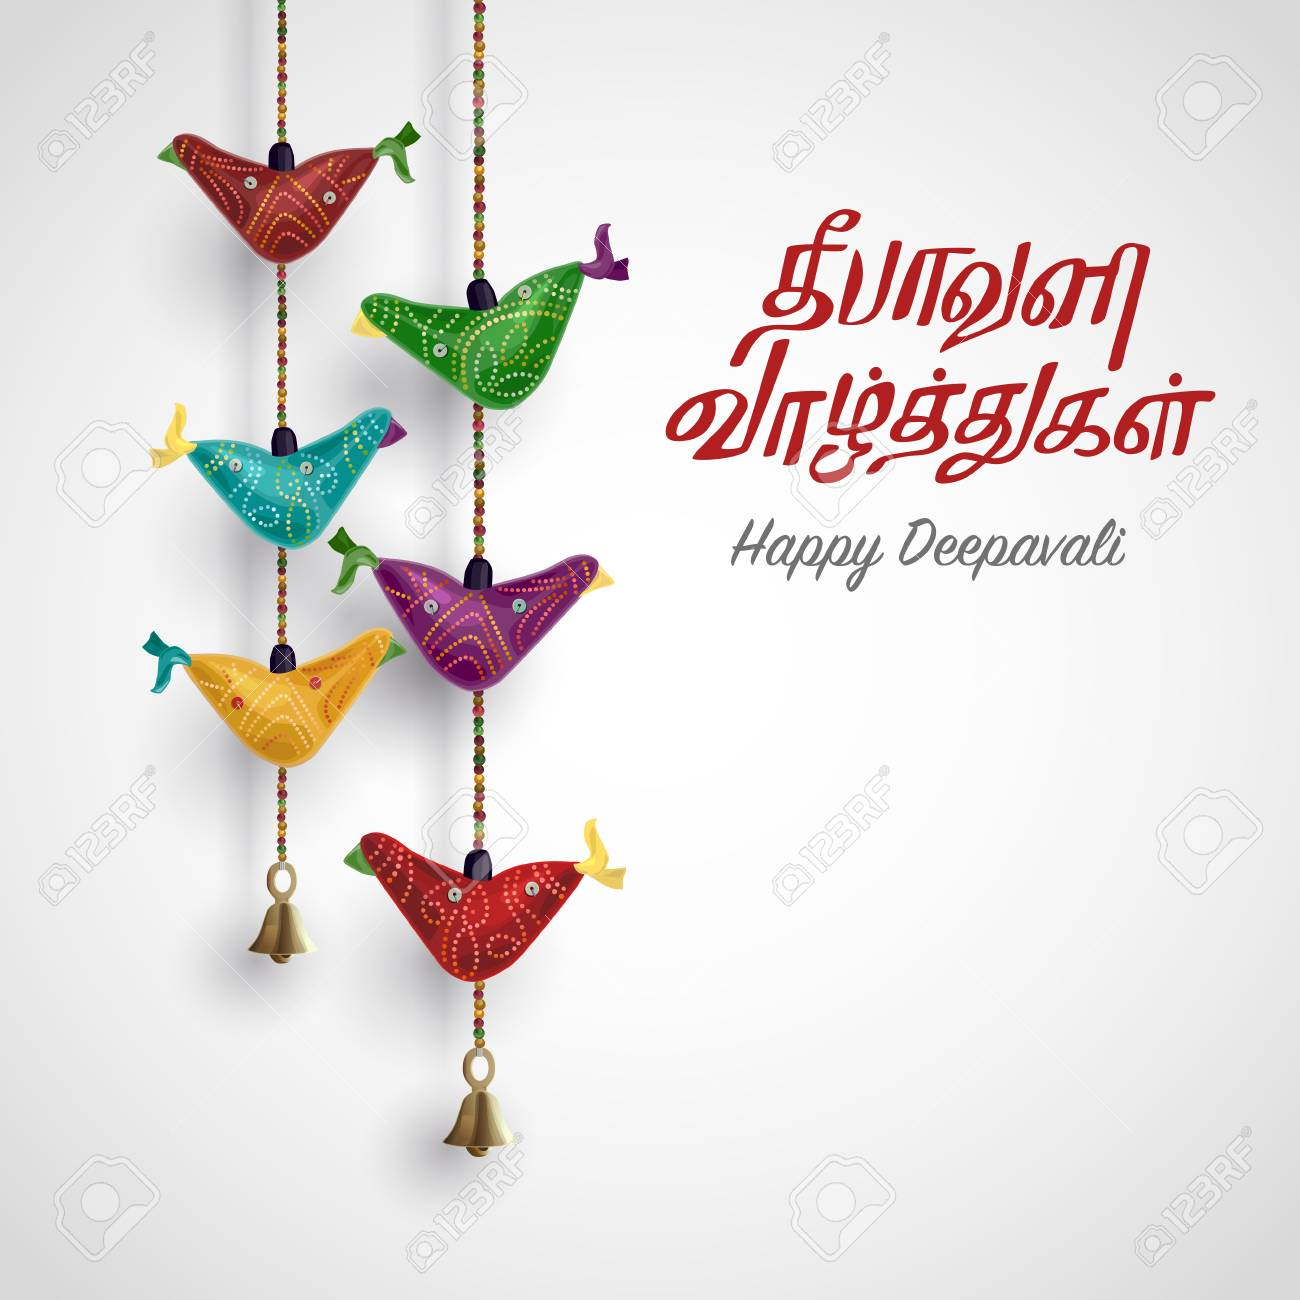 Deepavali greetings background tamil character deepavali valthugal deepavali greetings background tamil character m4hsunfo